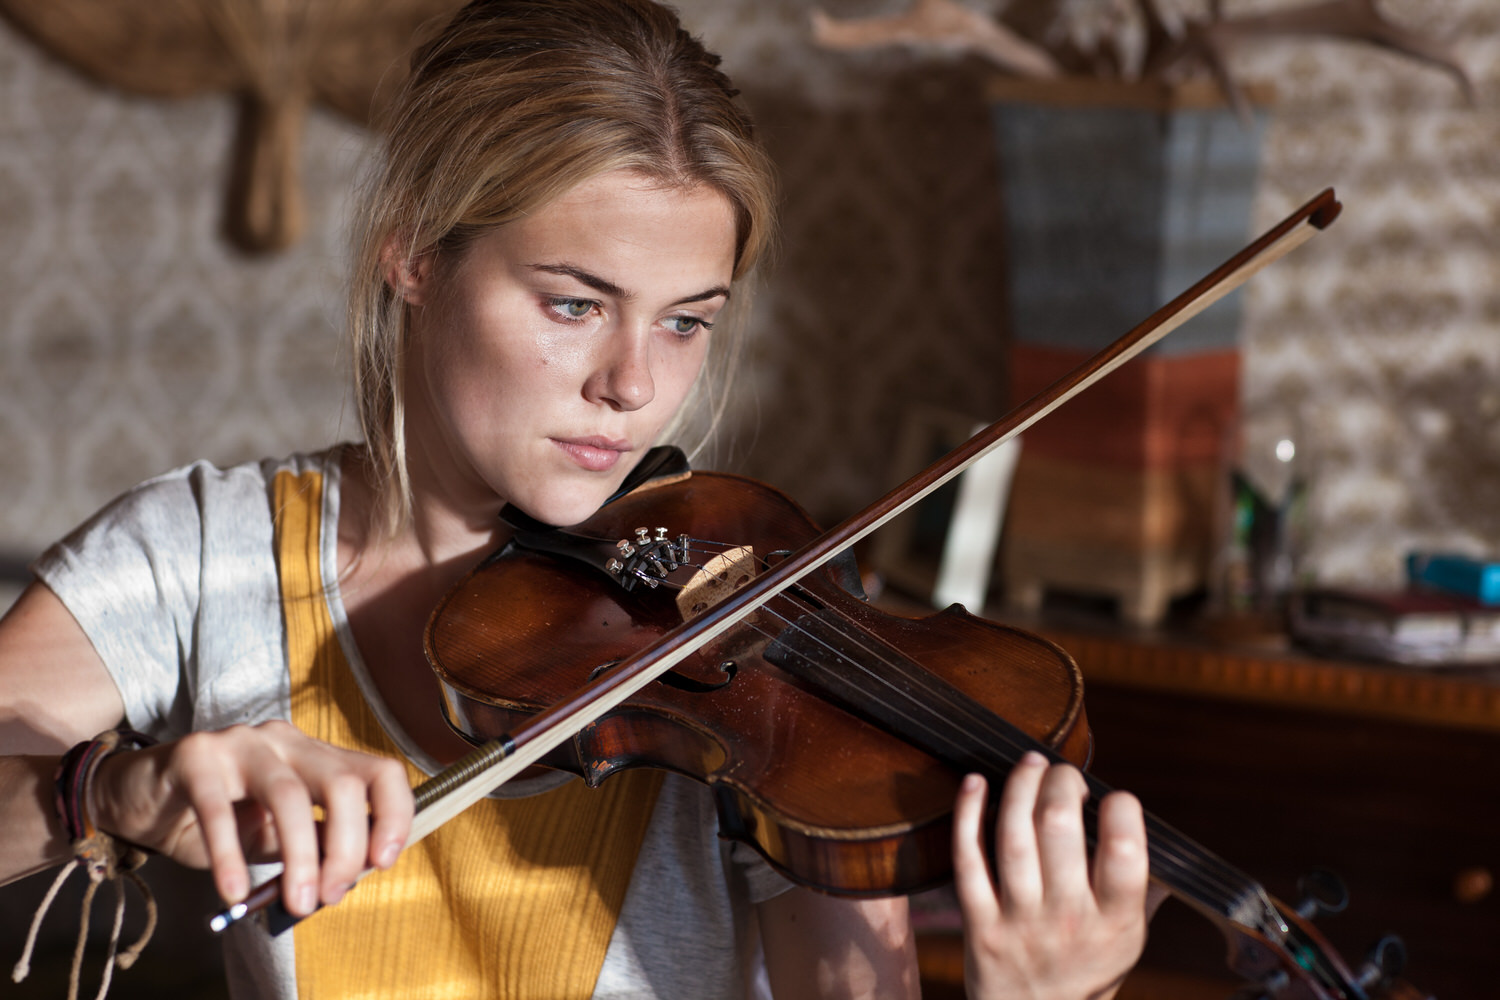 Actor  Rachael Taylor , photoraphed with a violin, on the set of the Australian motion picture film  Summer Coda  in Mildura,  Australia .